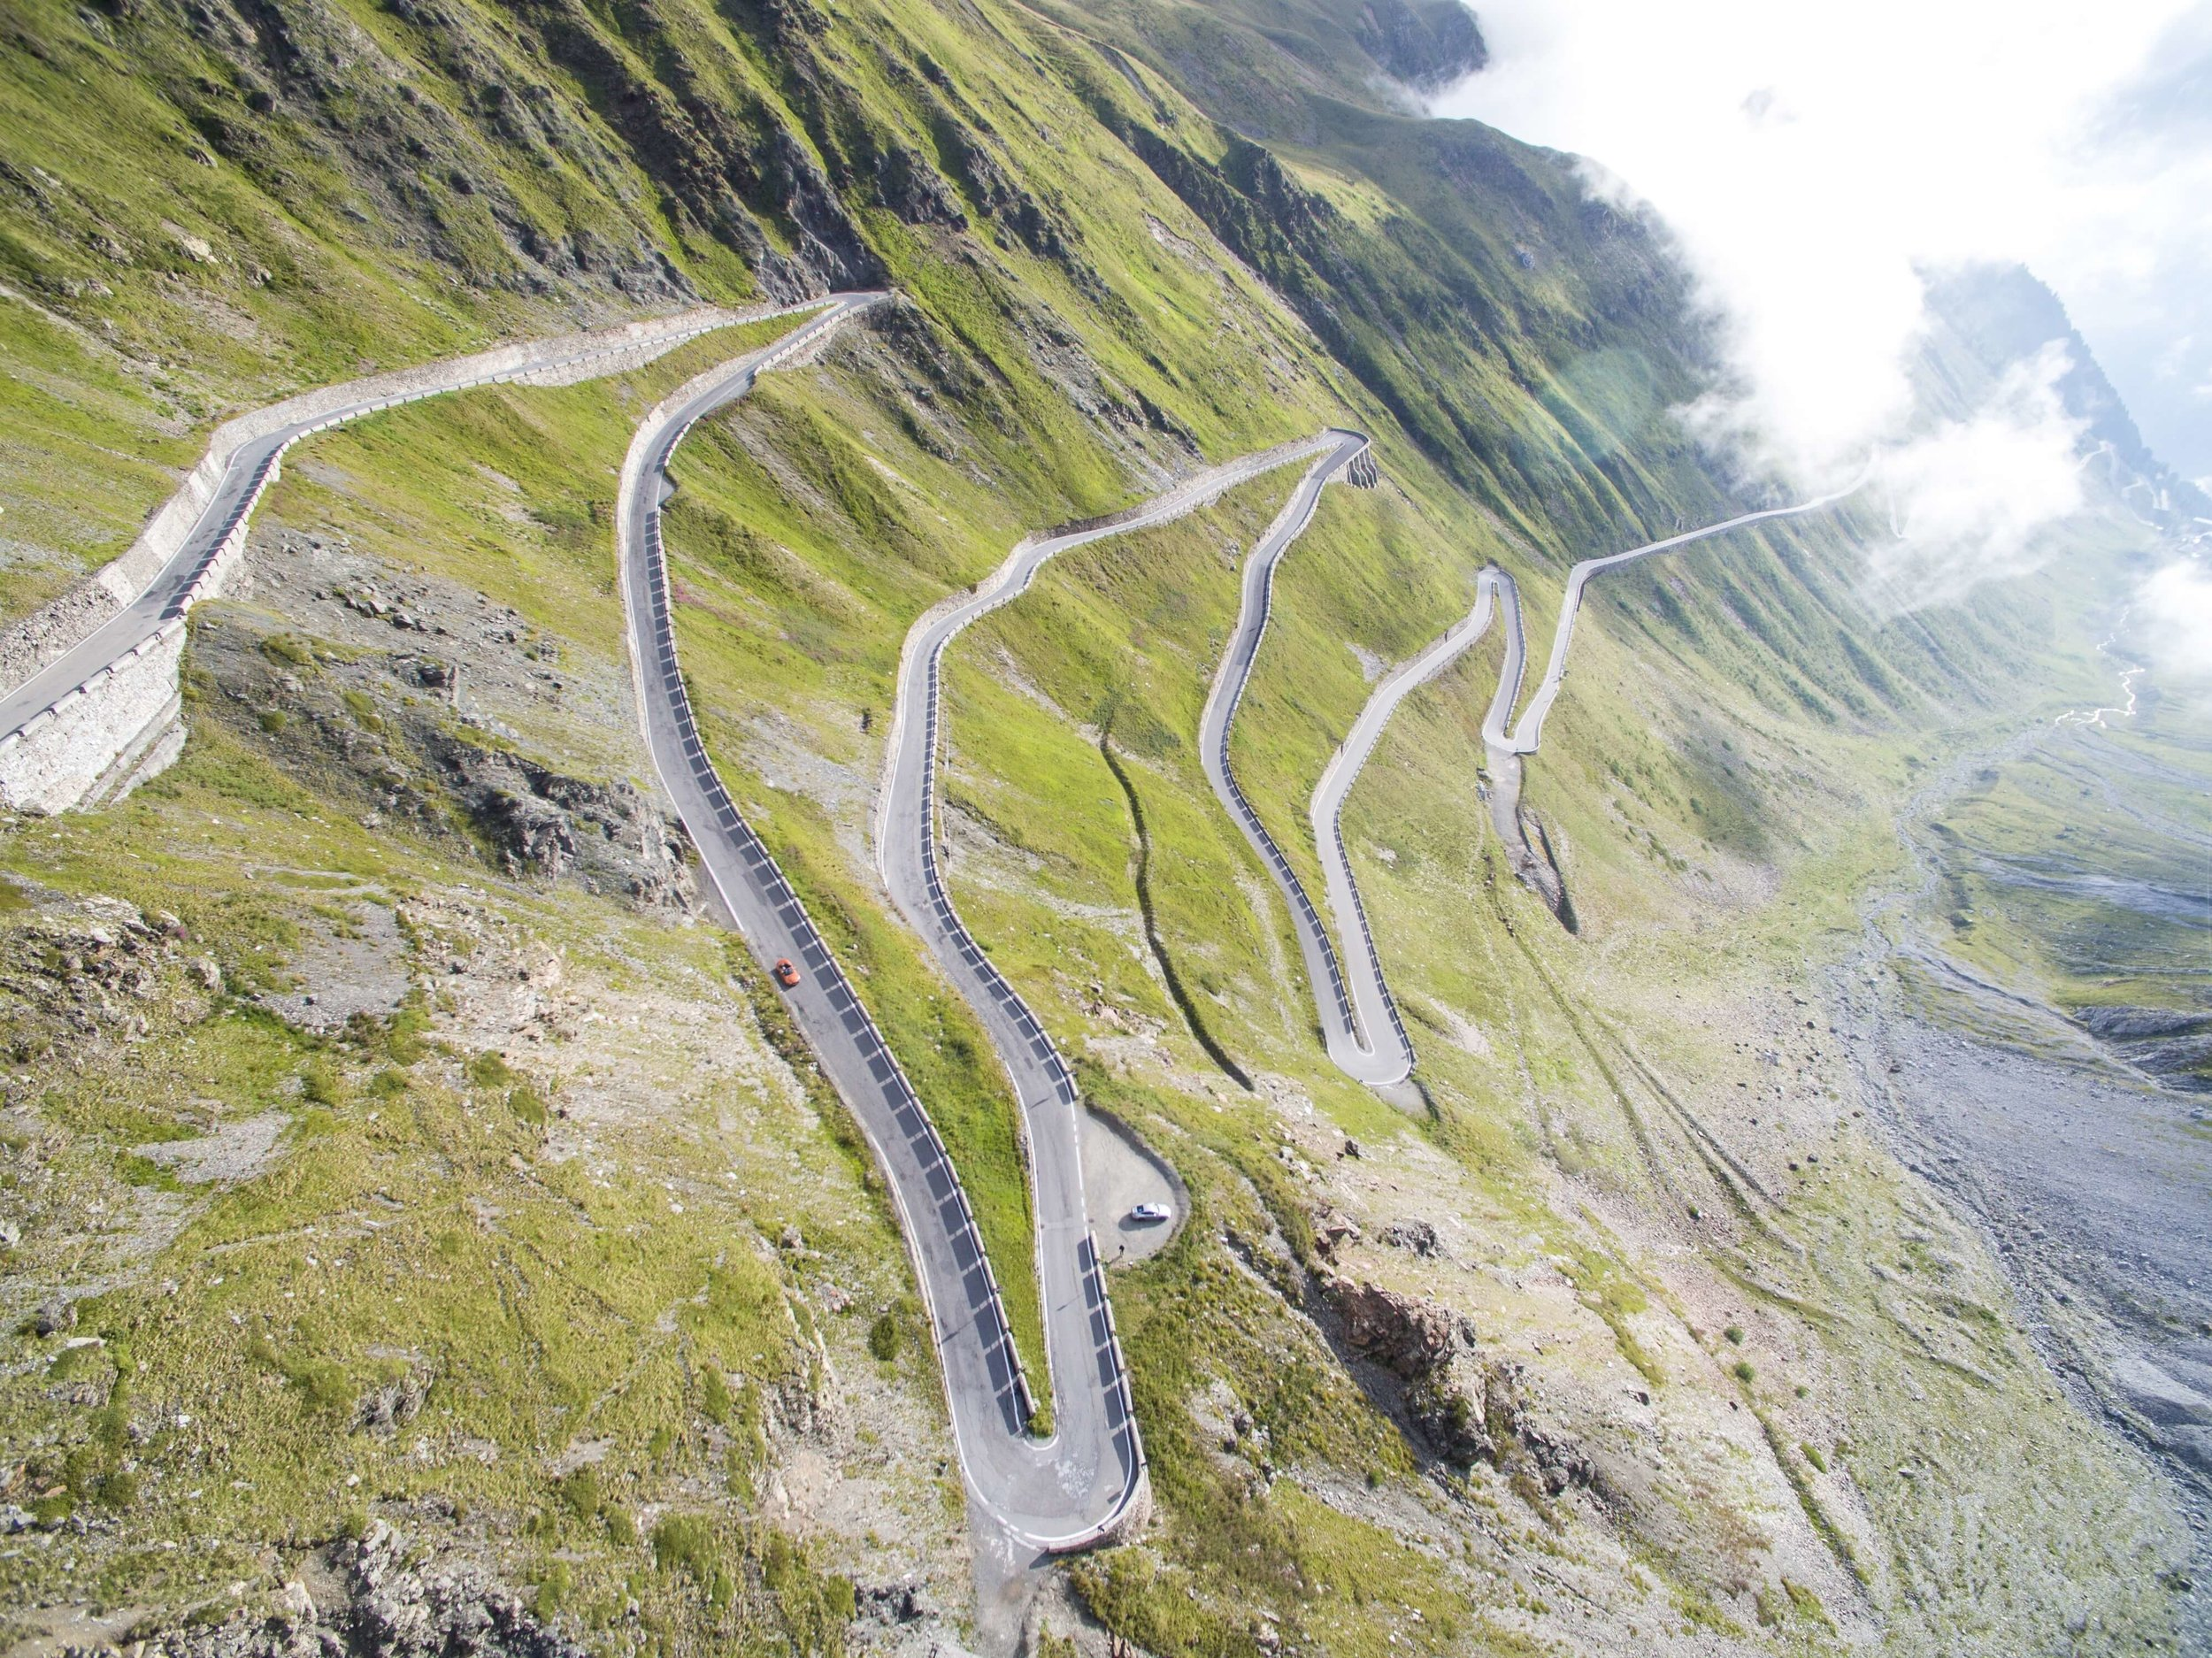 Stelvio Pass. Photo by  jean wimmerlin  on  Unsplash